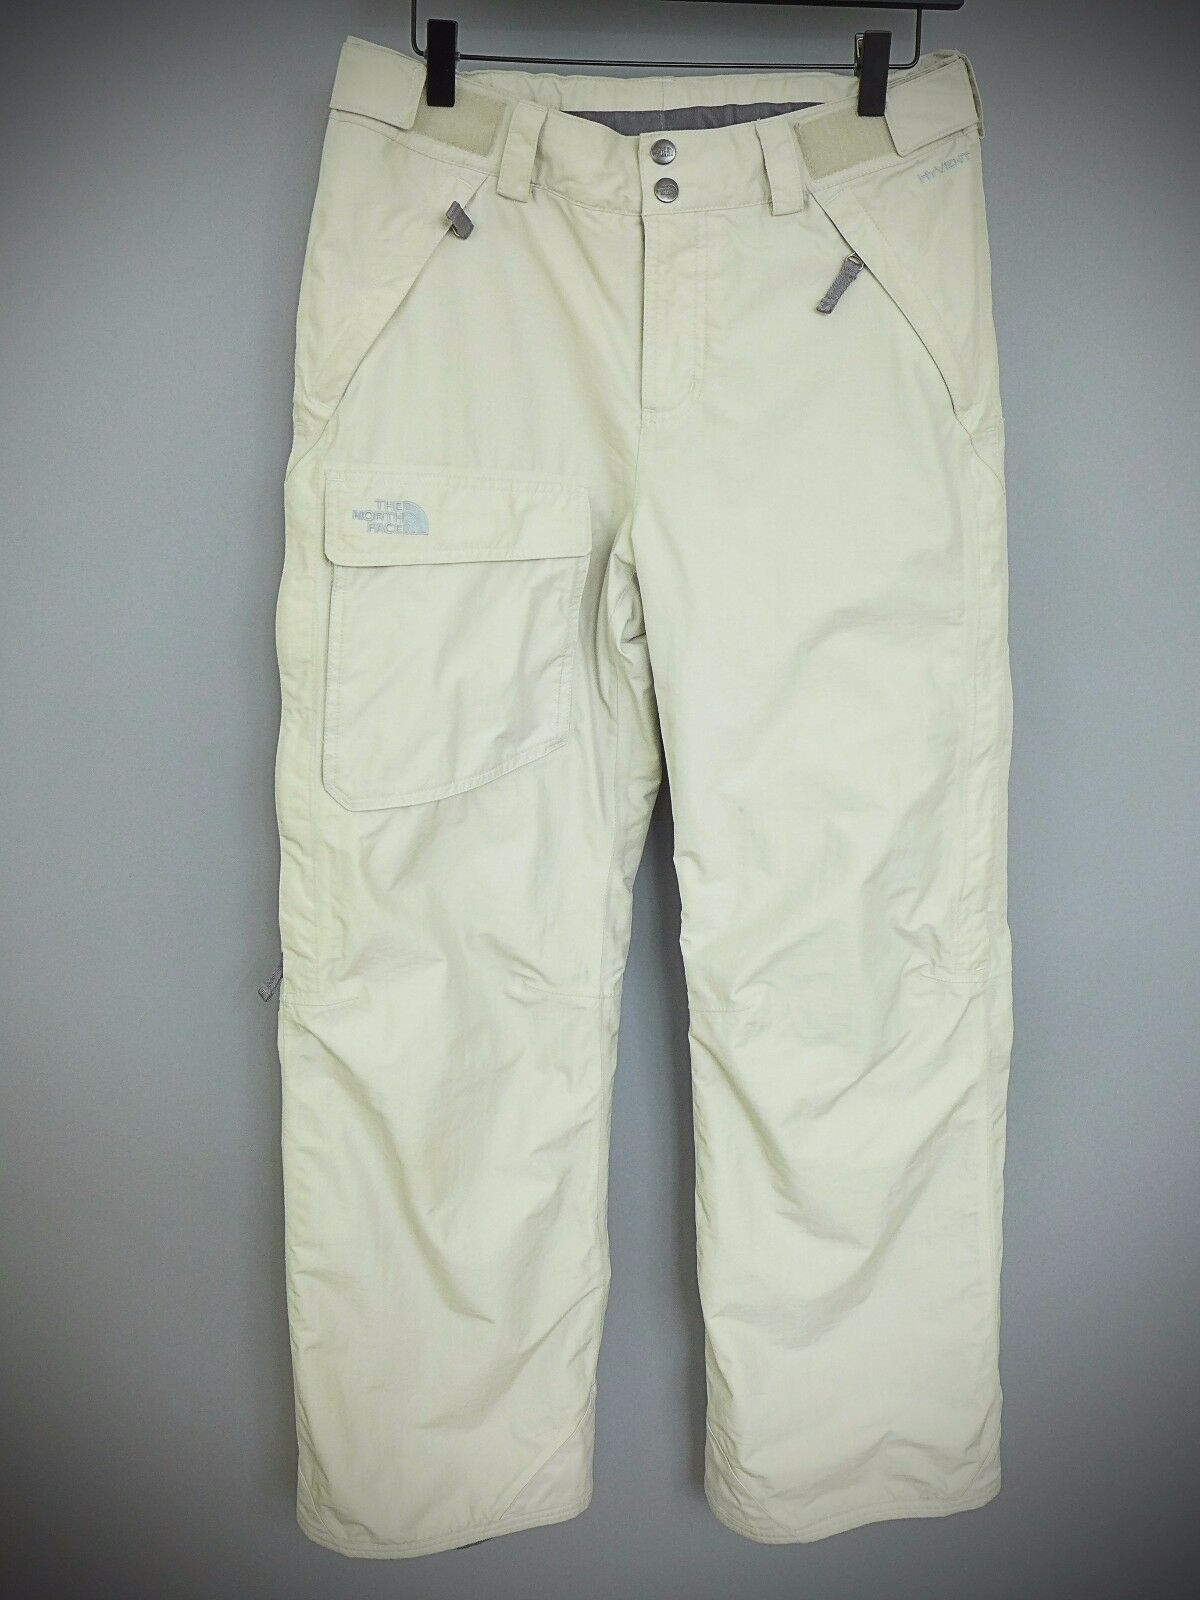 XII298 Women The North Face HyVent Skiing Snowboarding Trousers S W30 L29